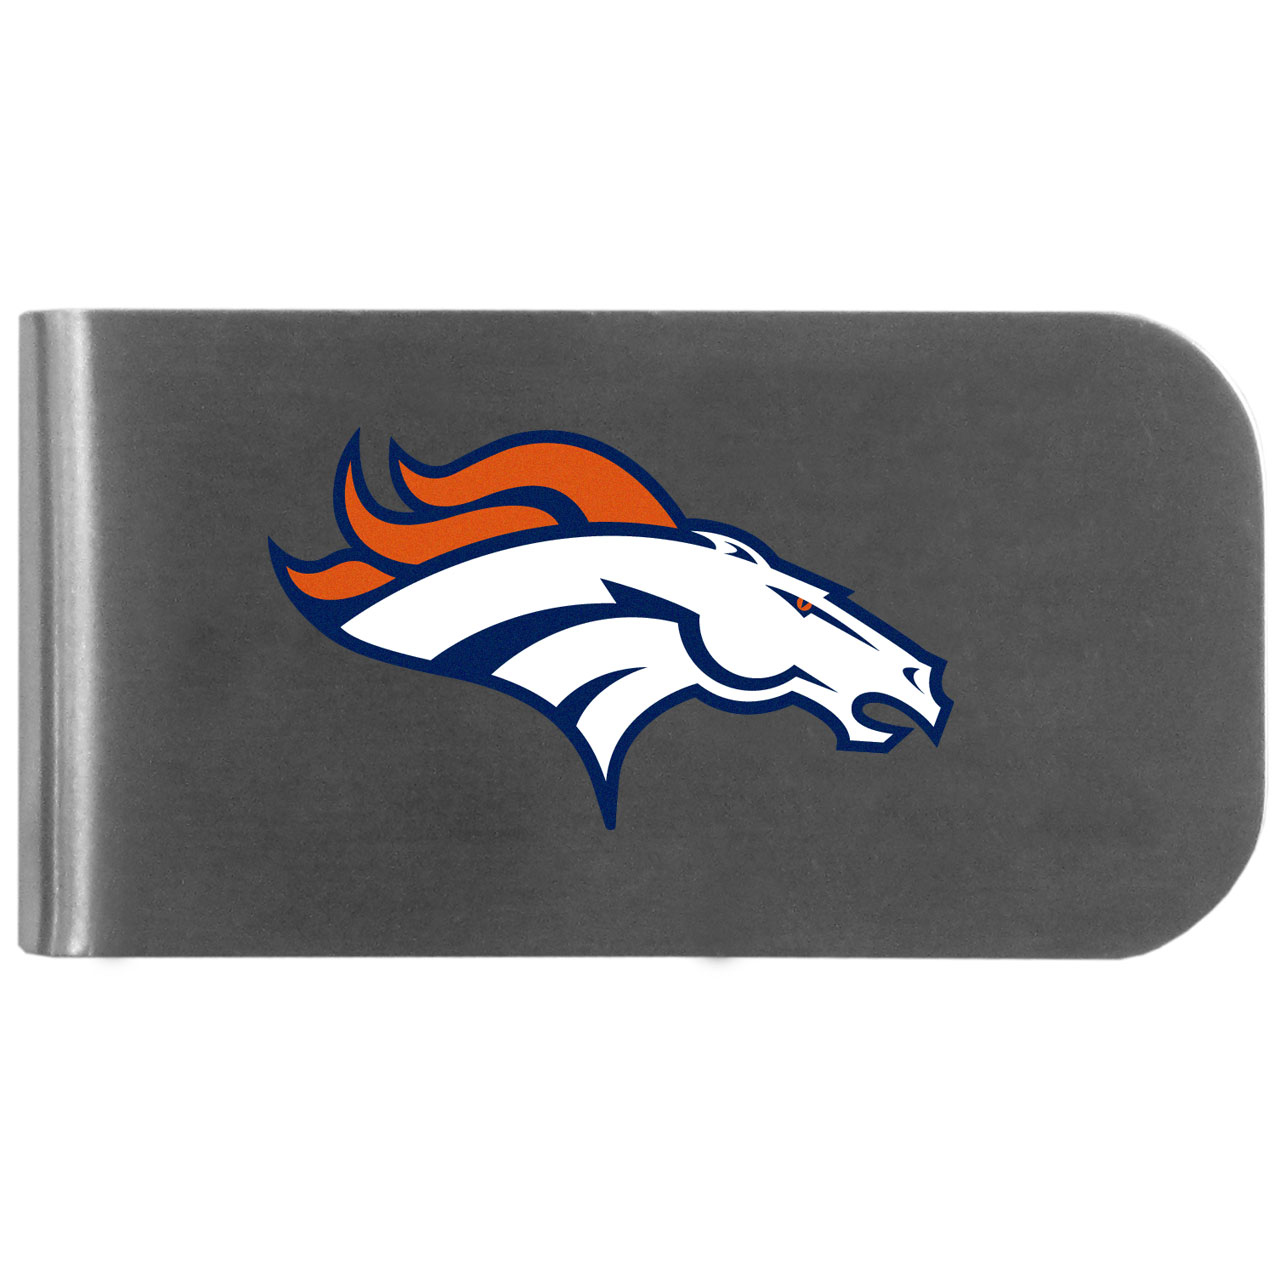 Denver Broncos Logo Bottle Opener Money Clip - This unique money clip features a classic, brushed-metal finish with a handy bottle opener feature on the back. The clip has the Denver Broncos logo expertly printed on the front of the clip.